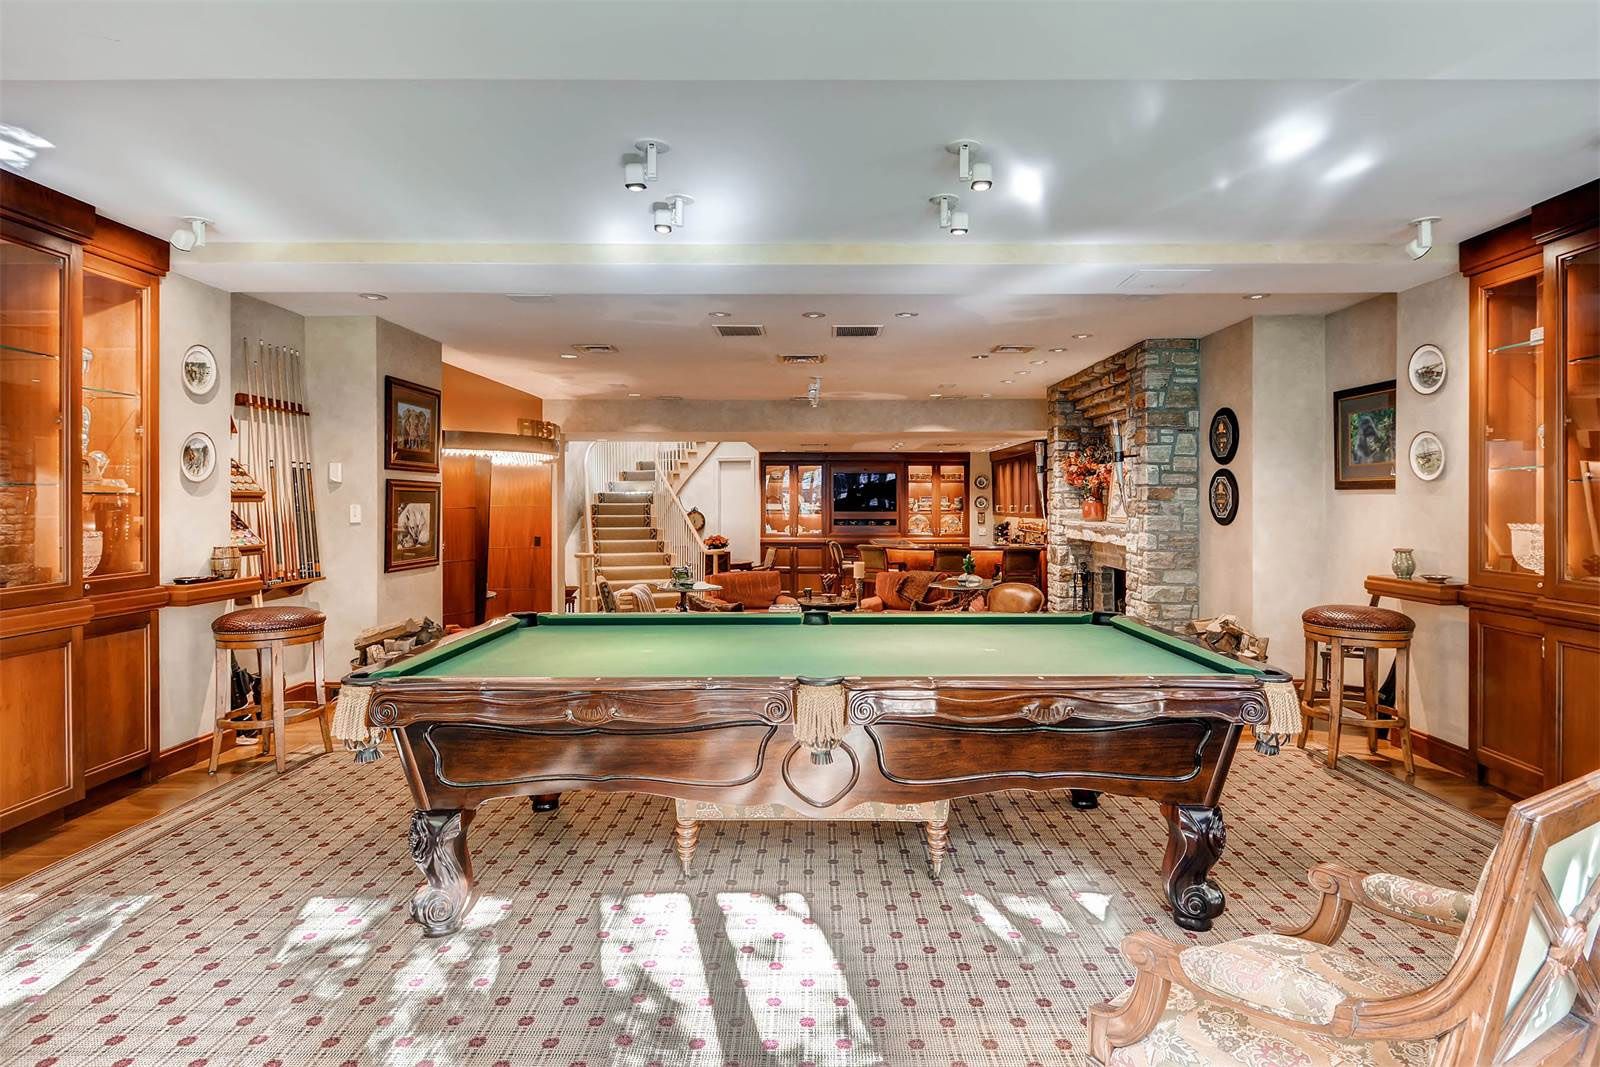 The home features a finished basement, home theater, six bedrooms and multiple fireplaces. (Courtesy Monument Sotheby's International Realty)